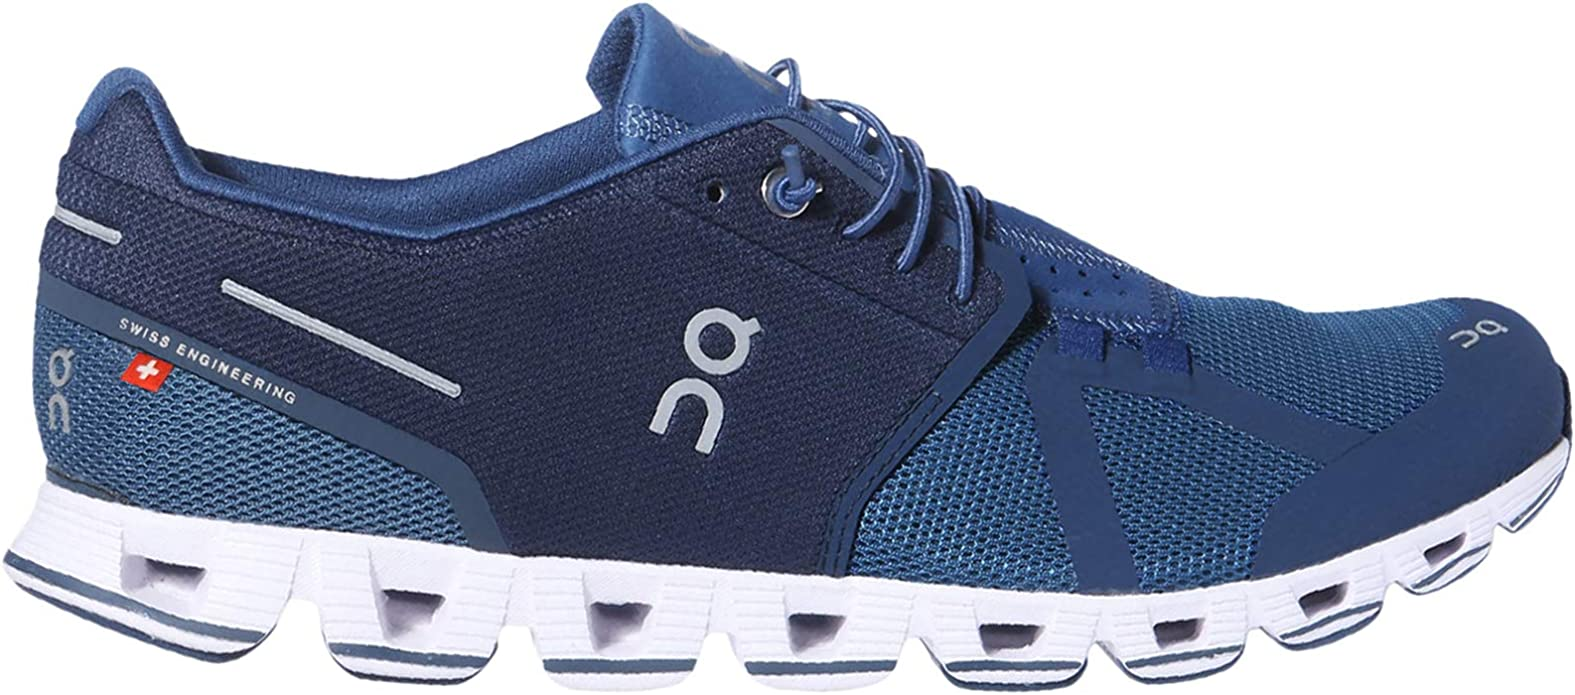 ON  - Cloud 2.0 - Running Shoes for Supination